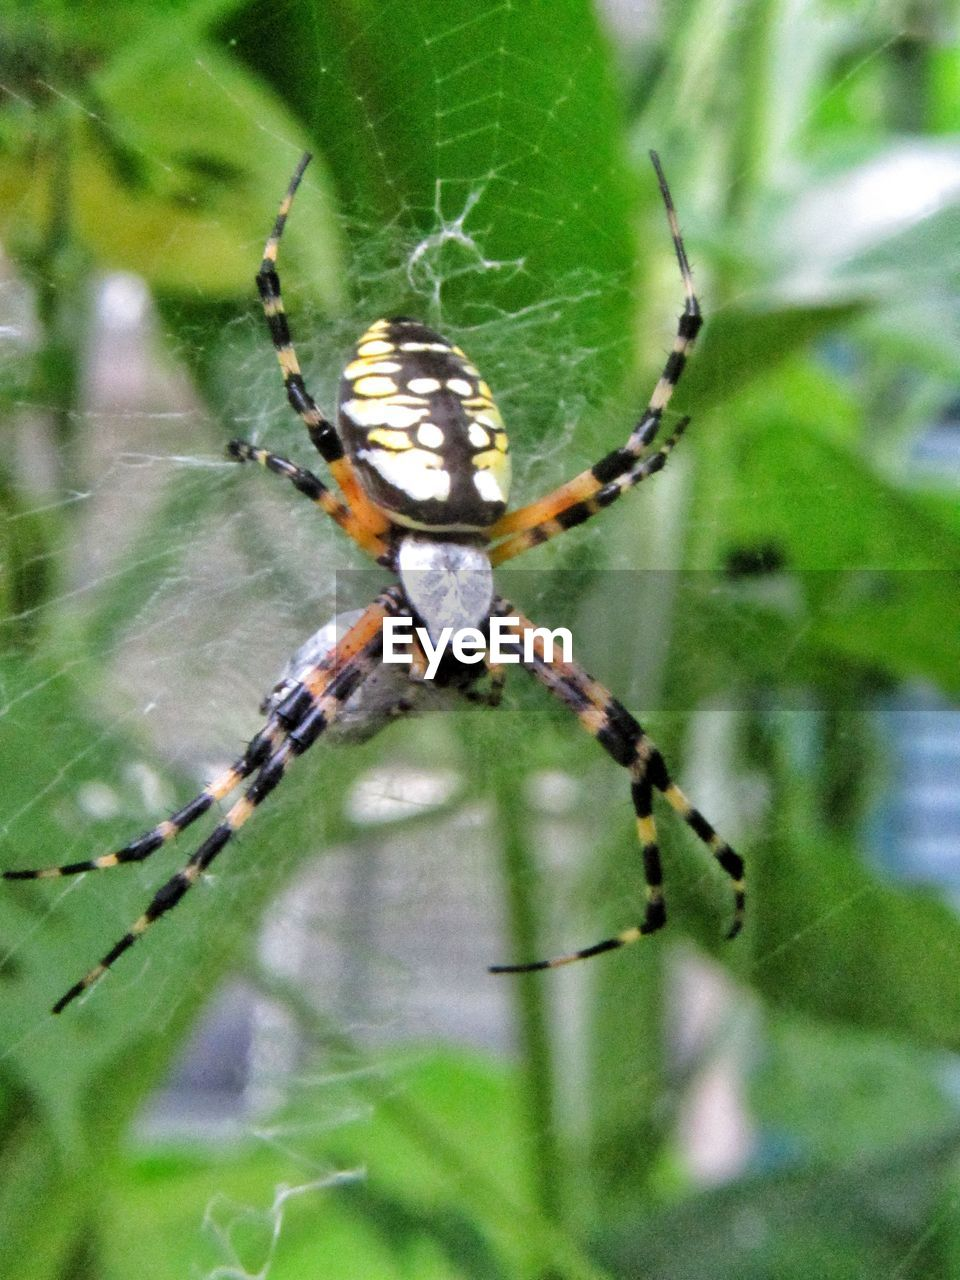 insect, arachnid, animal themes, spider, one animal, animals in the wild, invertebrate, animal, animal wildlife, arthropod, spider web, close-up, fragility, focus on foreground, animal body part, nature, animal leg, day, zoology, no people, outdoors, web